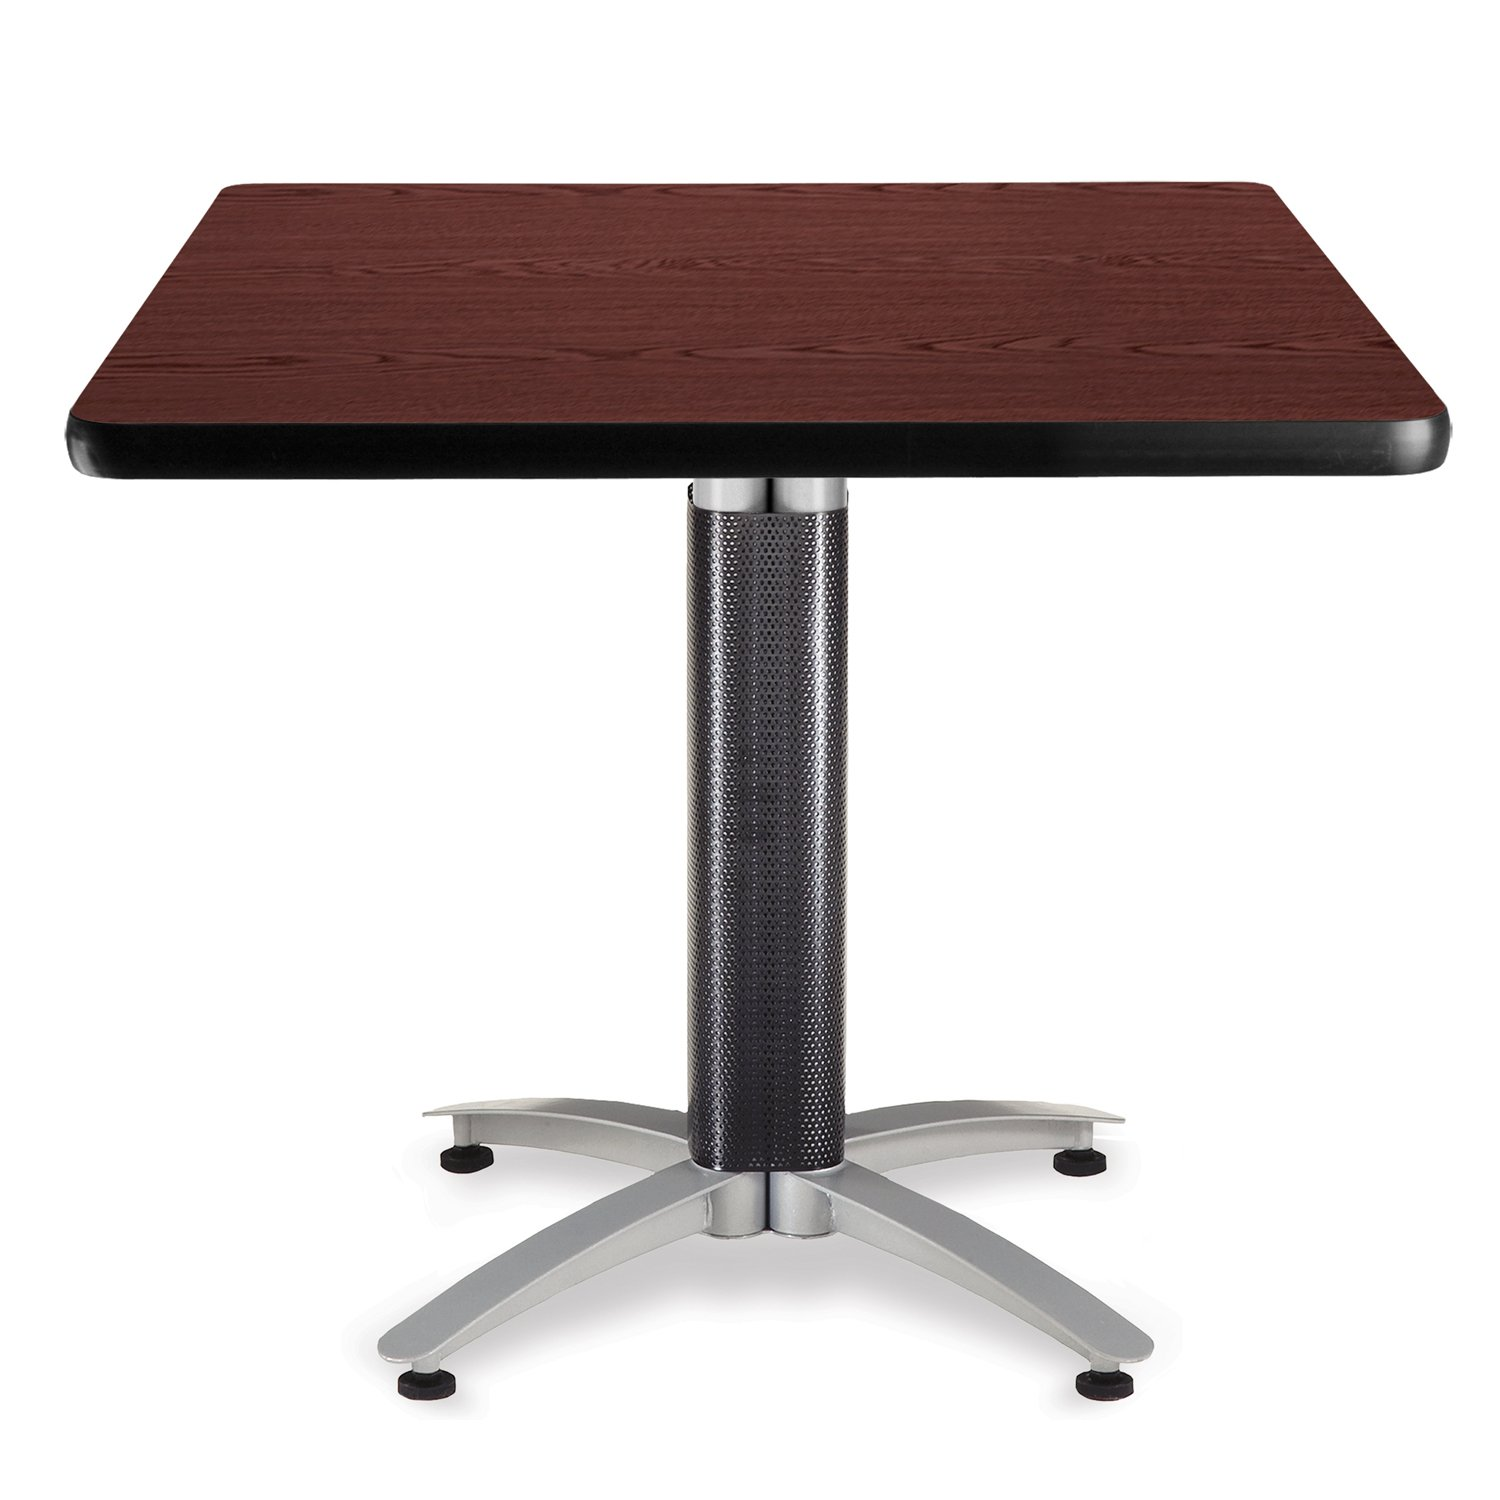 """OFM Core Collection 36"""" Multi-Purpose Square Table with Metal Mesh Base, in Mahogany (KMT36SQ-MHGY)"""